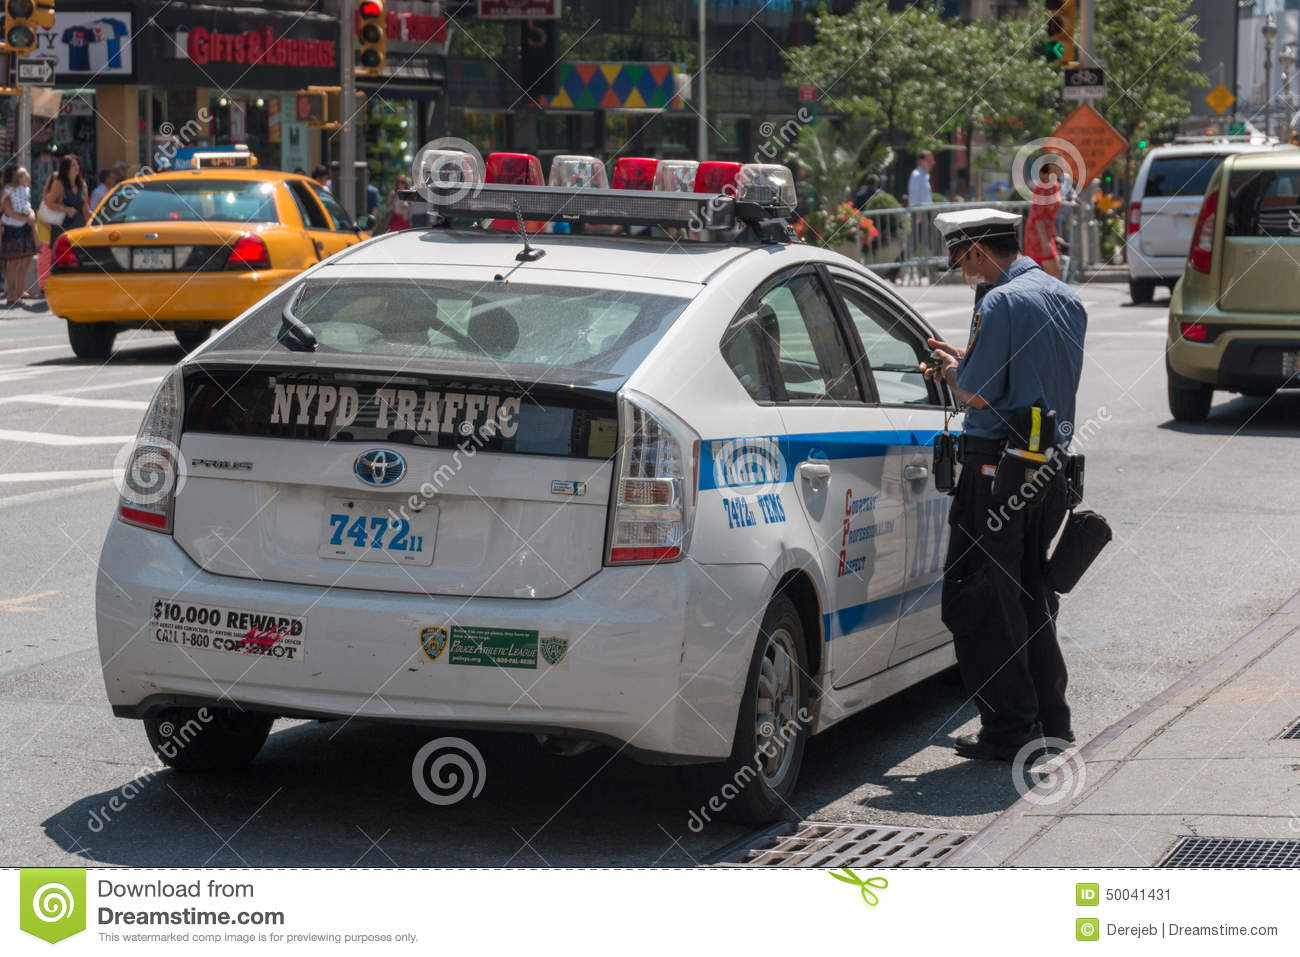 Nyc Traffic Ticket >> Parking Ticket Editorial Image | CartoonDealer.com #50041542